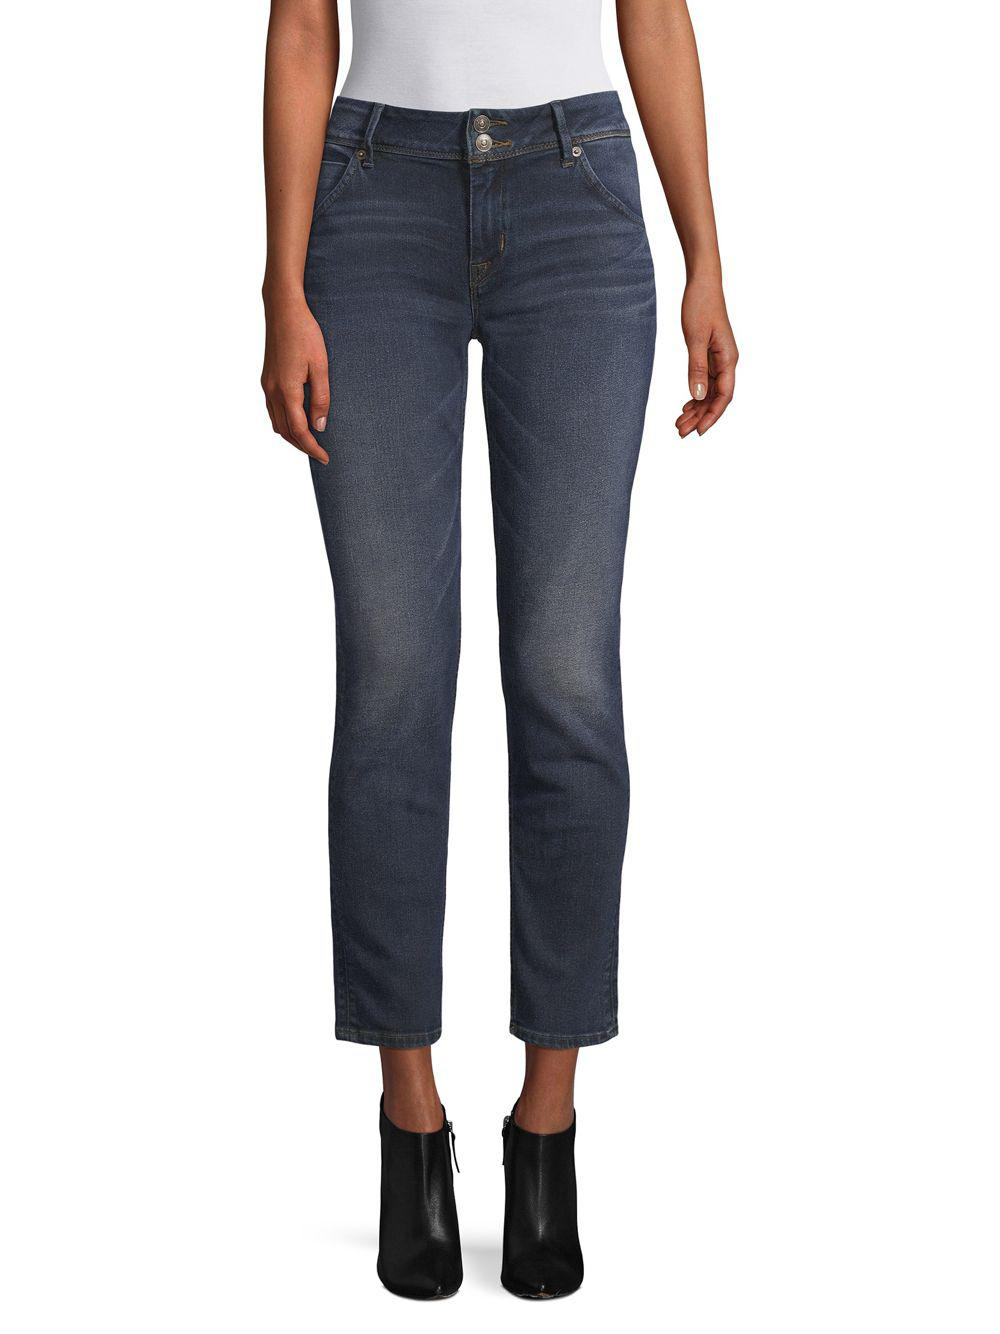 422552a0d16 Hudson Jeans Collin Cropped Skinny Jeans in Blue - Lyst